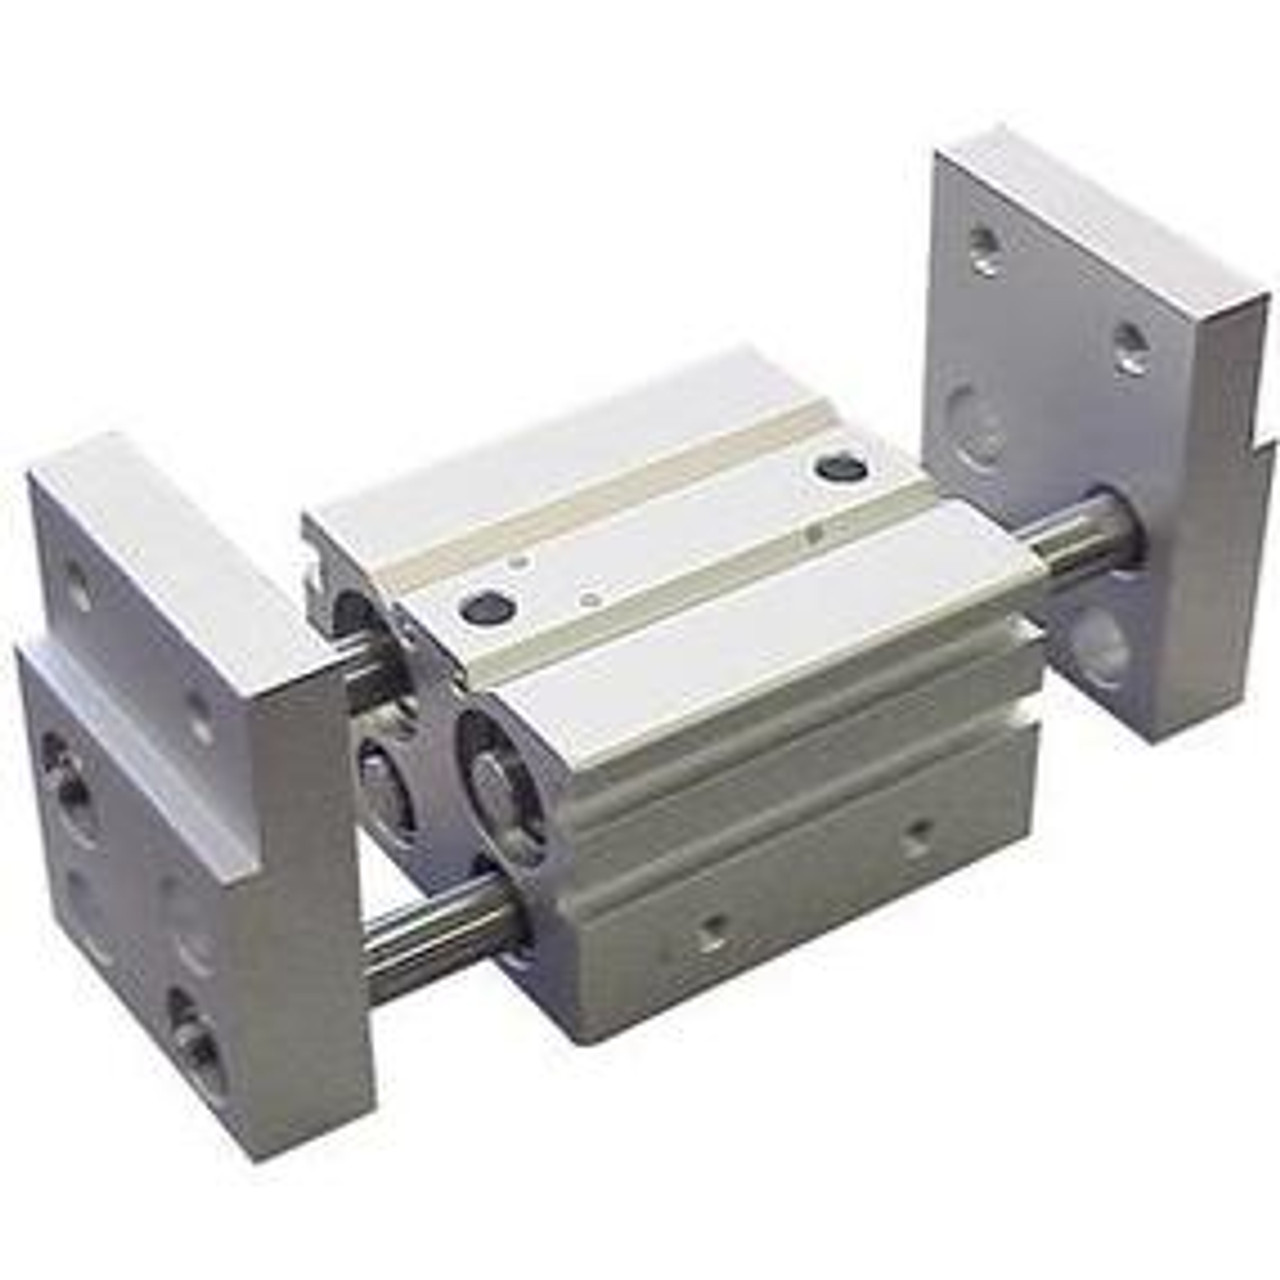 Business & Industrial SMC MHL2-10D Parallel Style Air Gripper ...